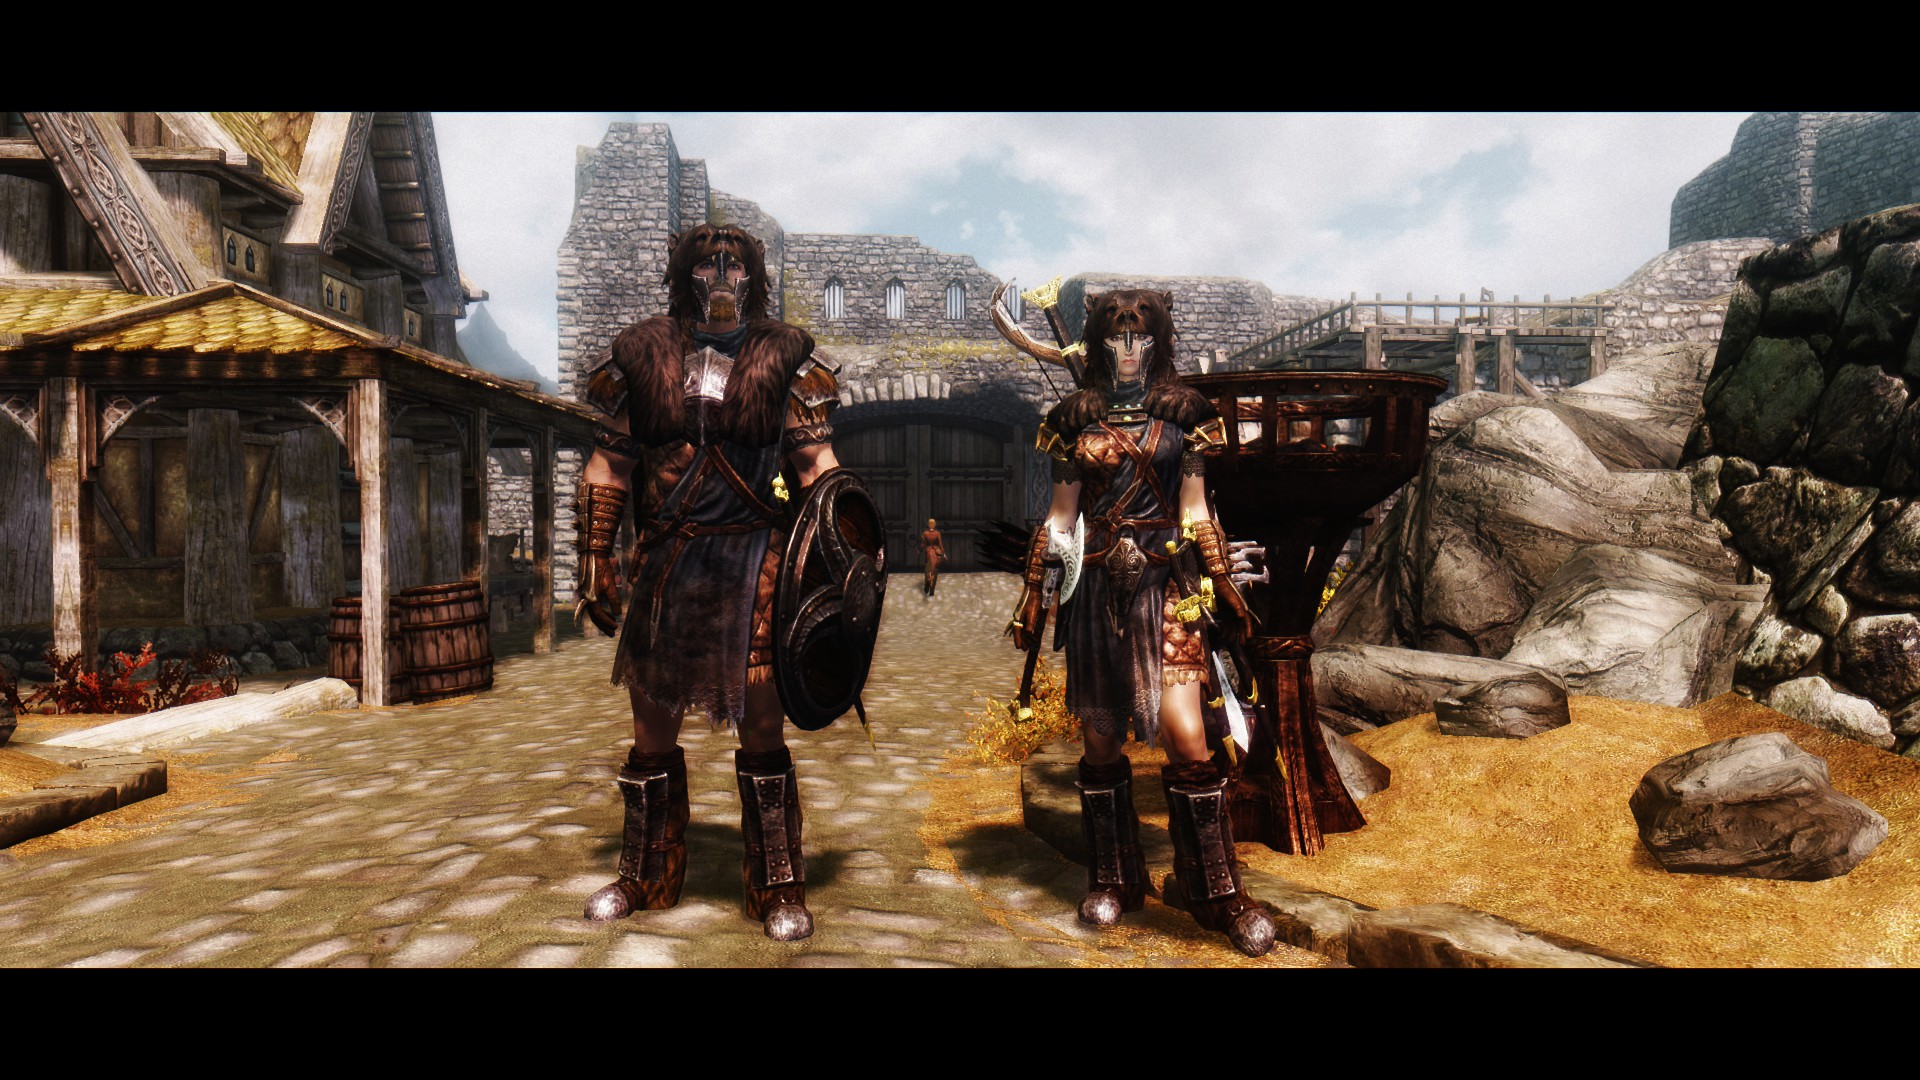 Stormcloak Battle Armor